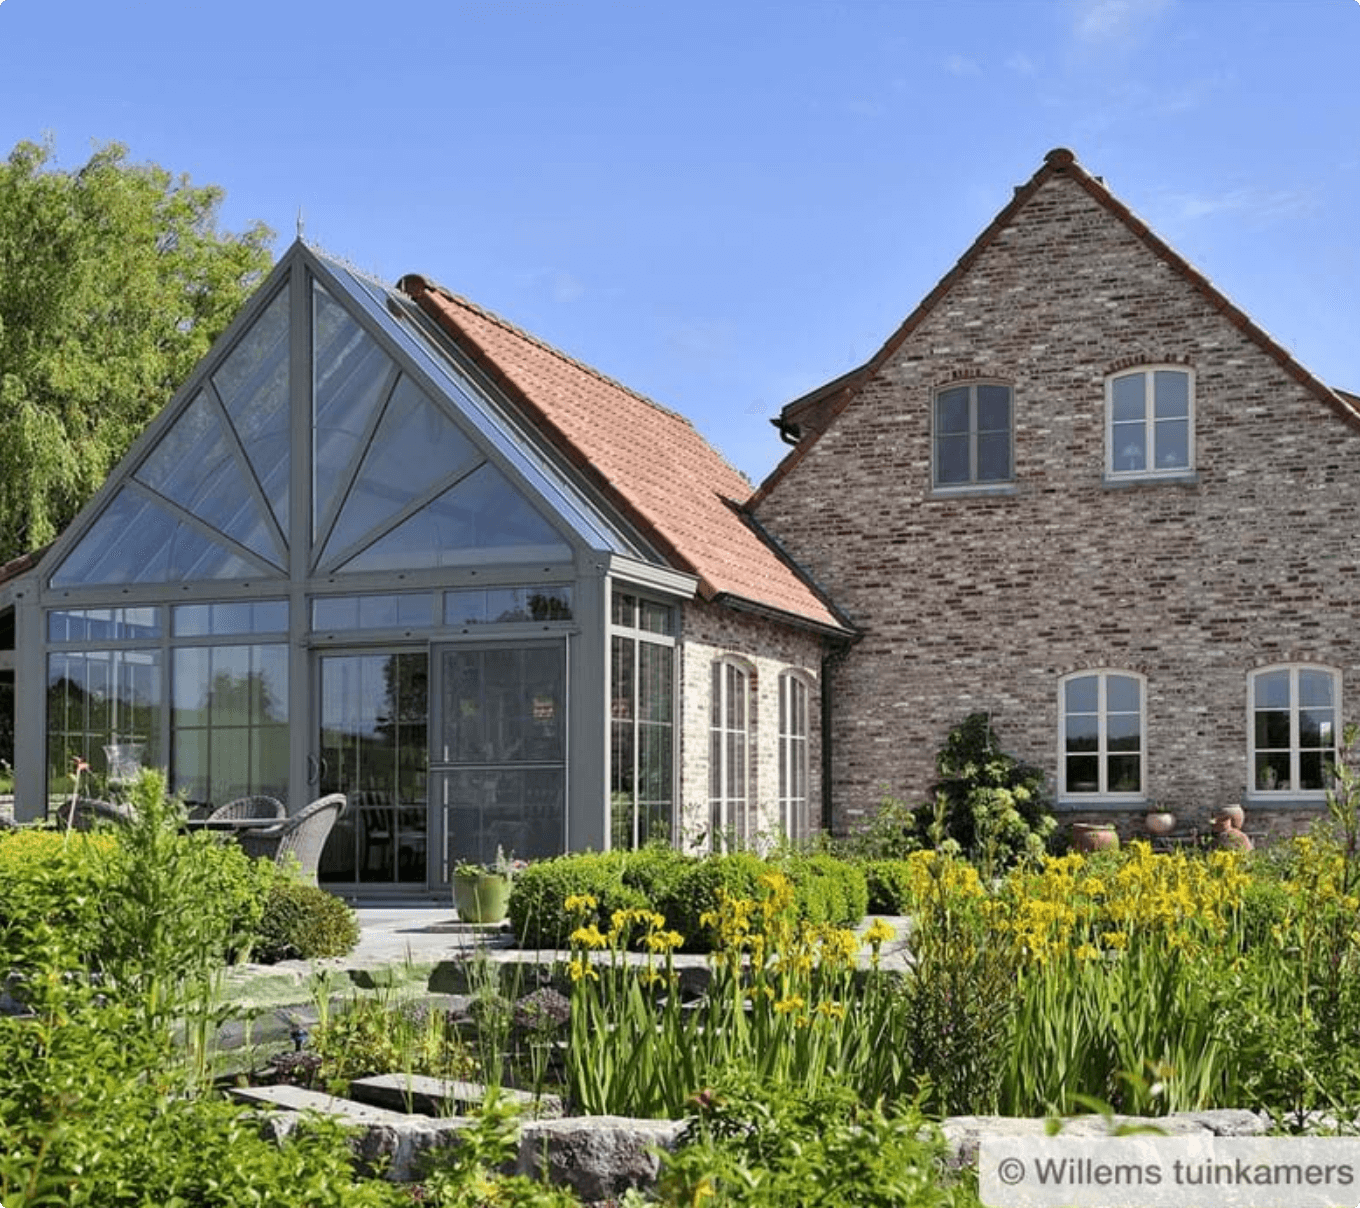 Why Should You Choose A Greenhouse For Your Home?